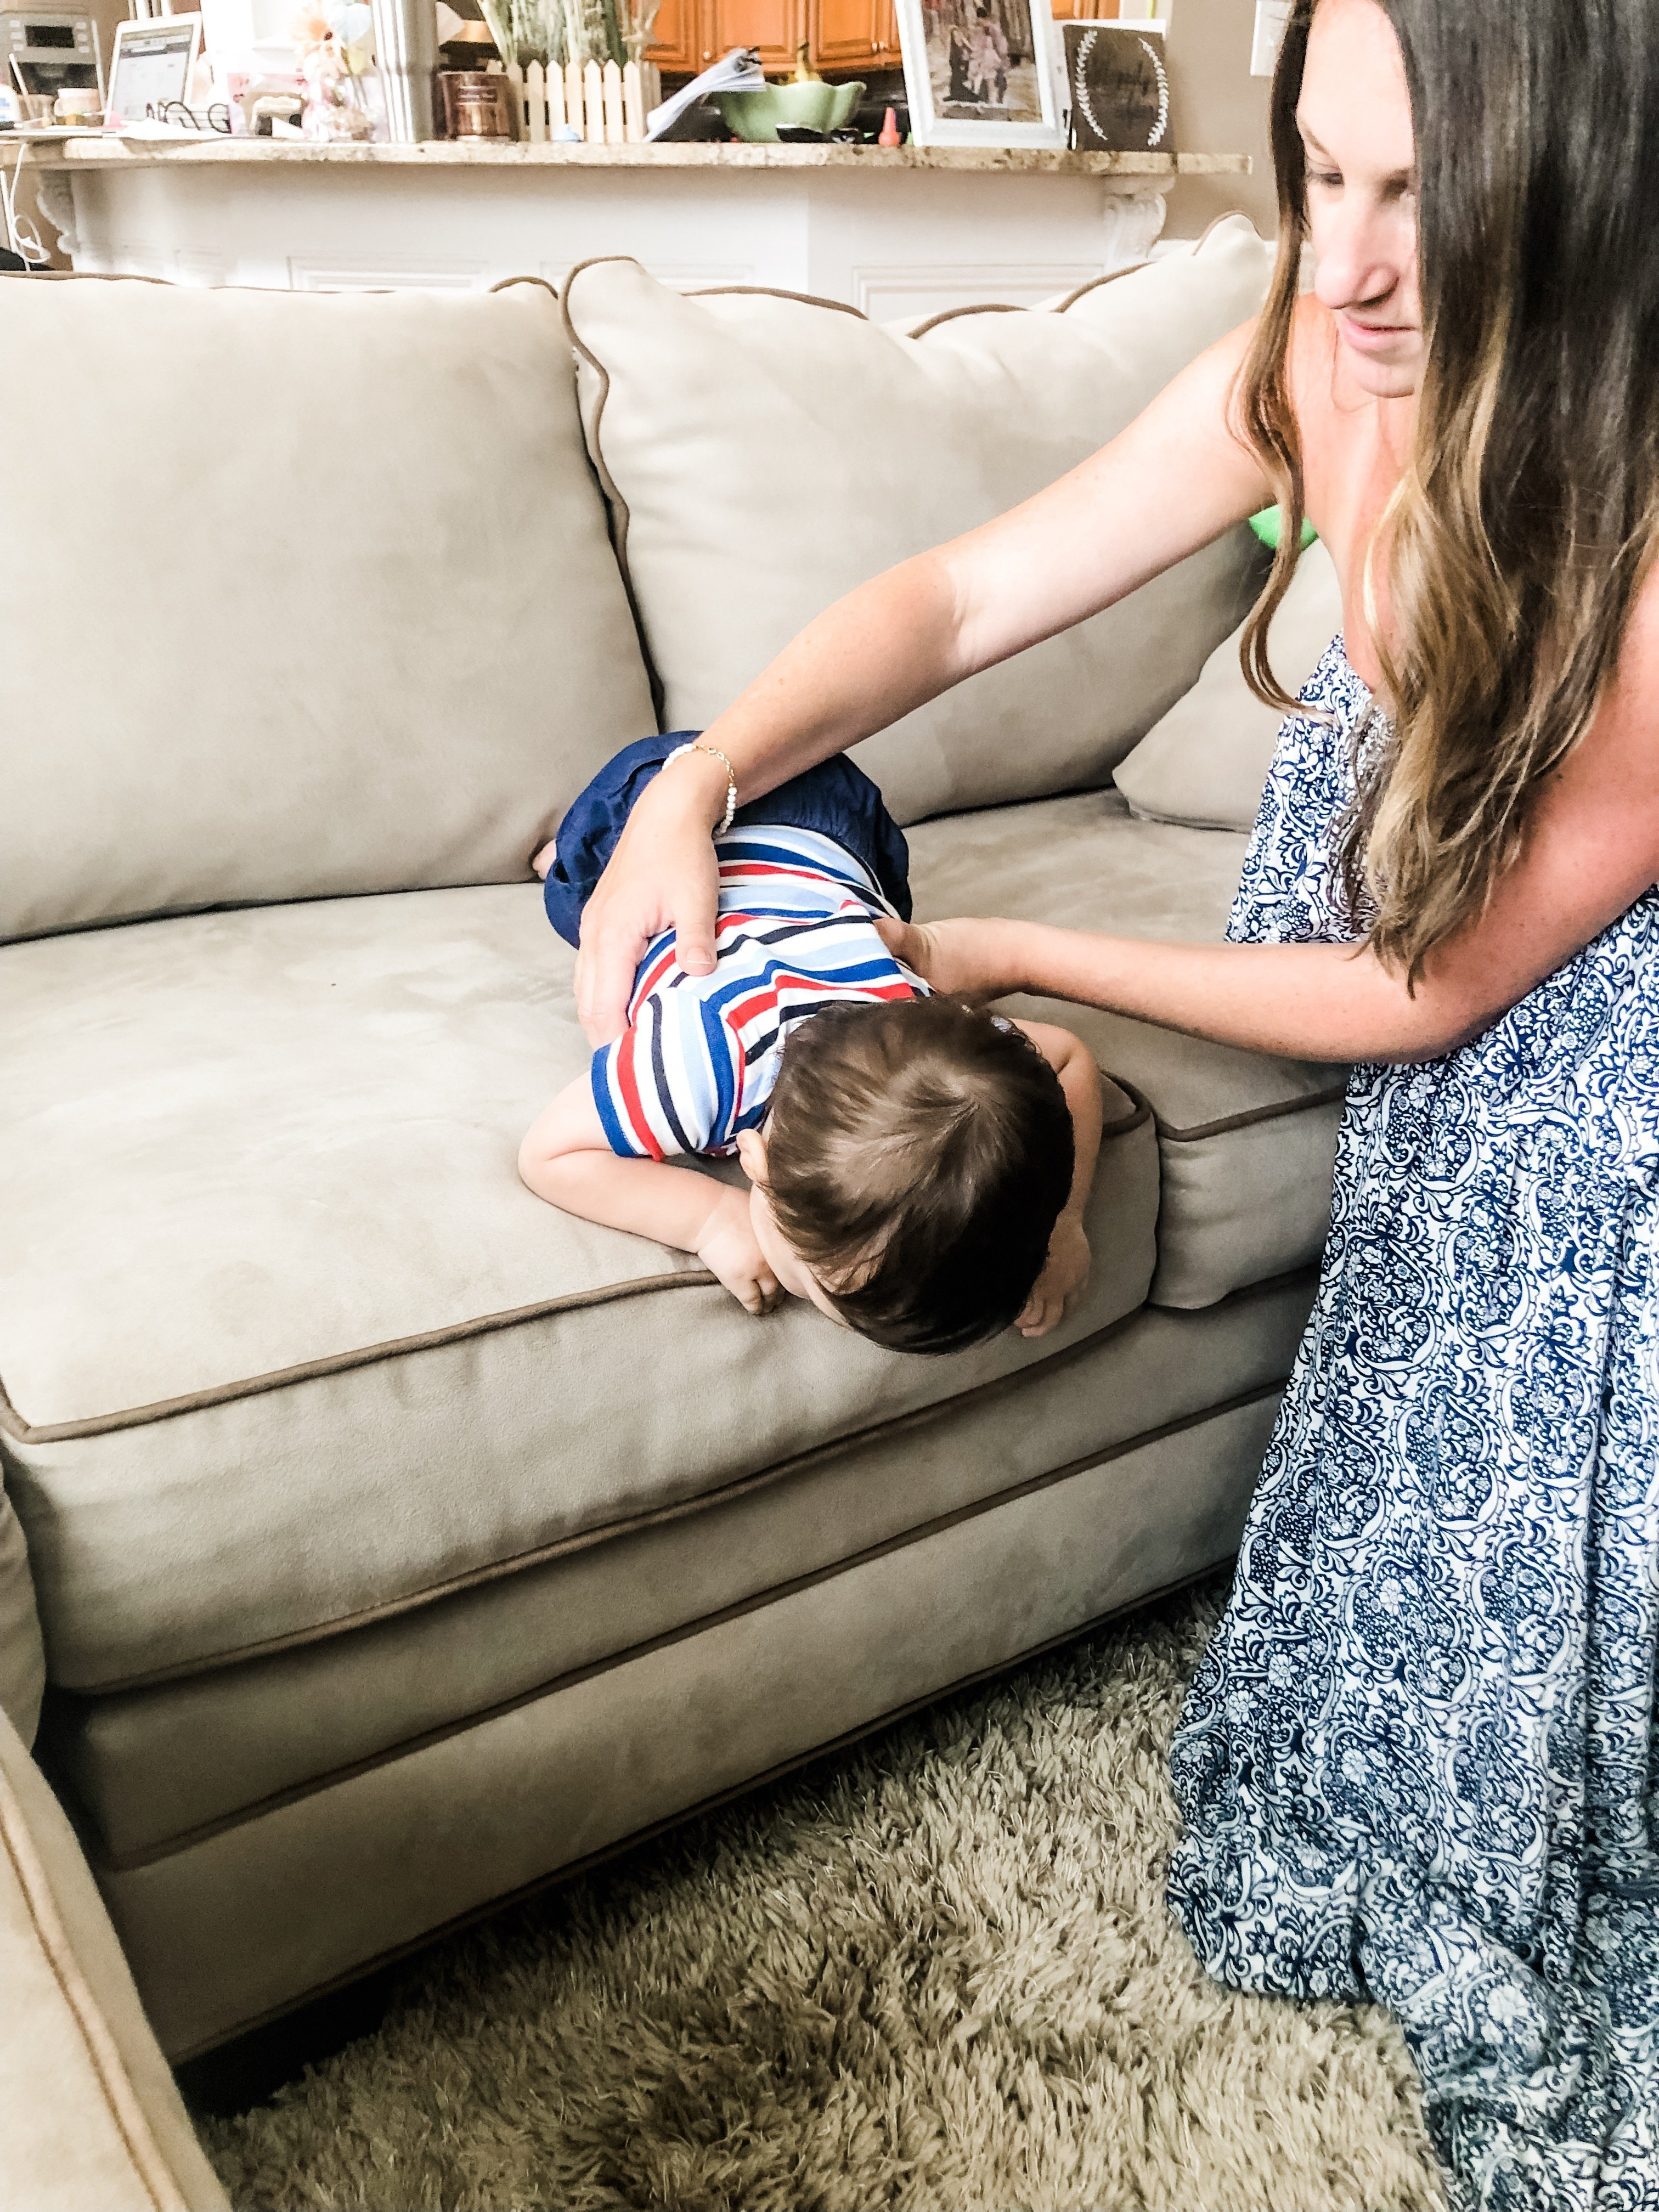 Teach your infant safety skills early like getting off a couch, bed, or any high surface safely. Practice this many times and your baby will learn quickly.